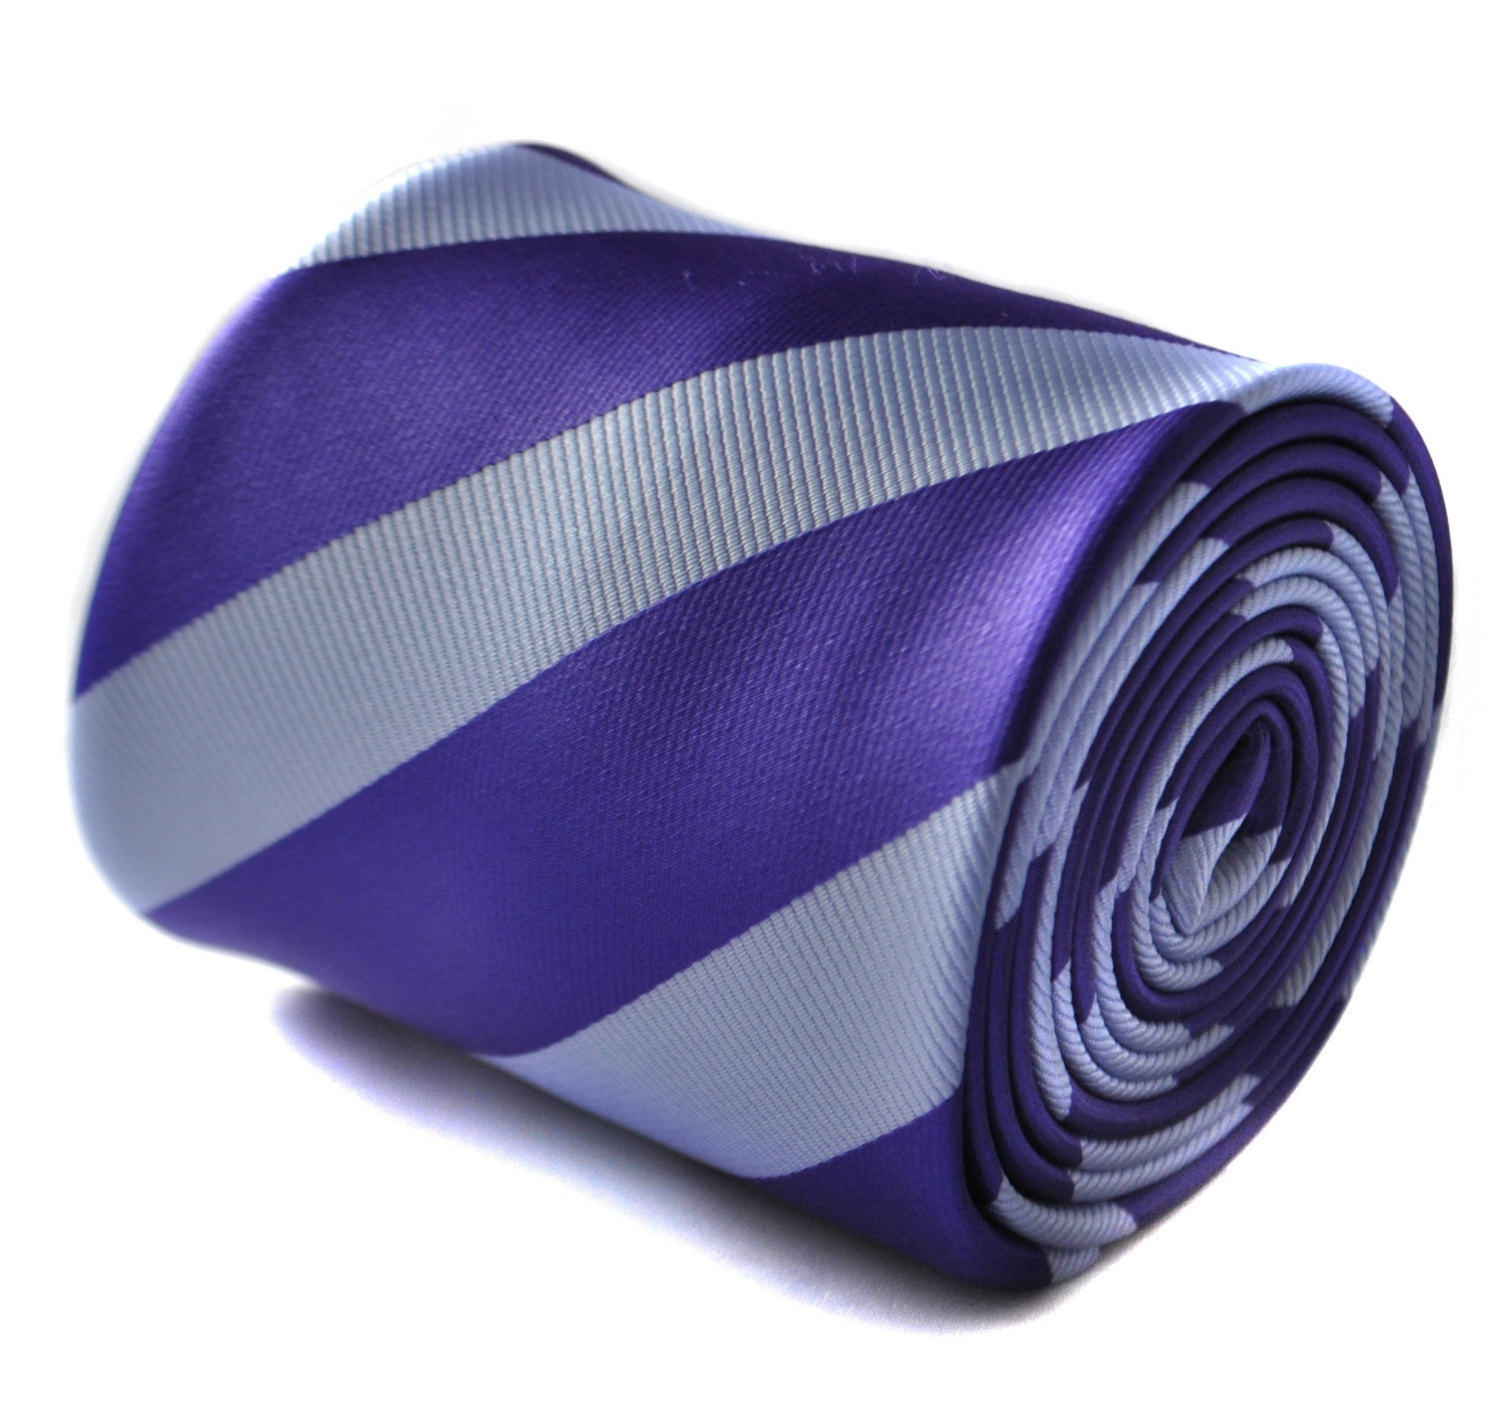 cadbury purple and light blue barber striped tie with signature floral design to